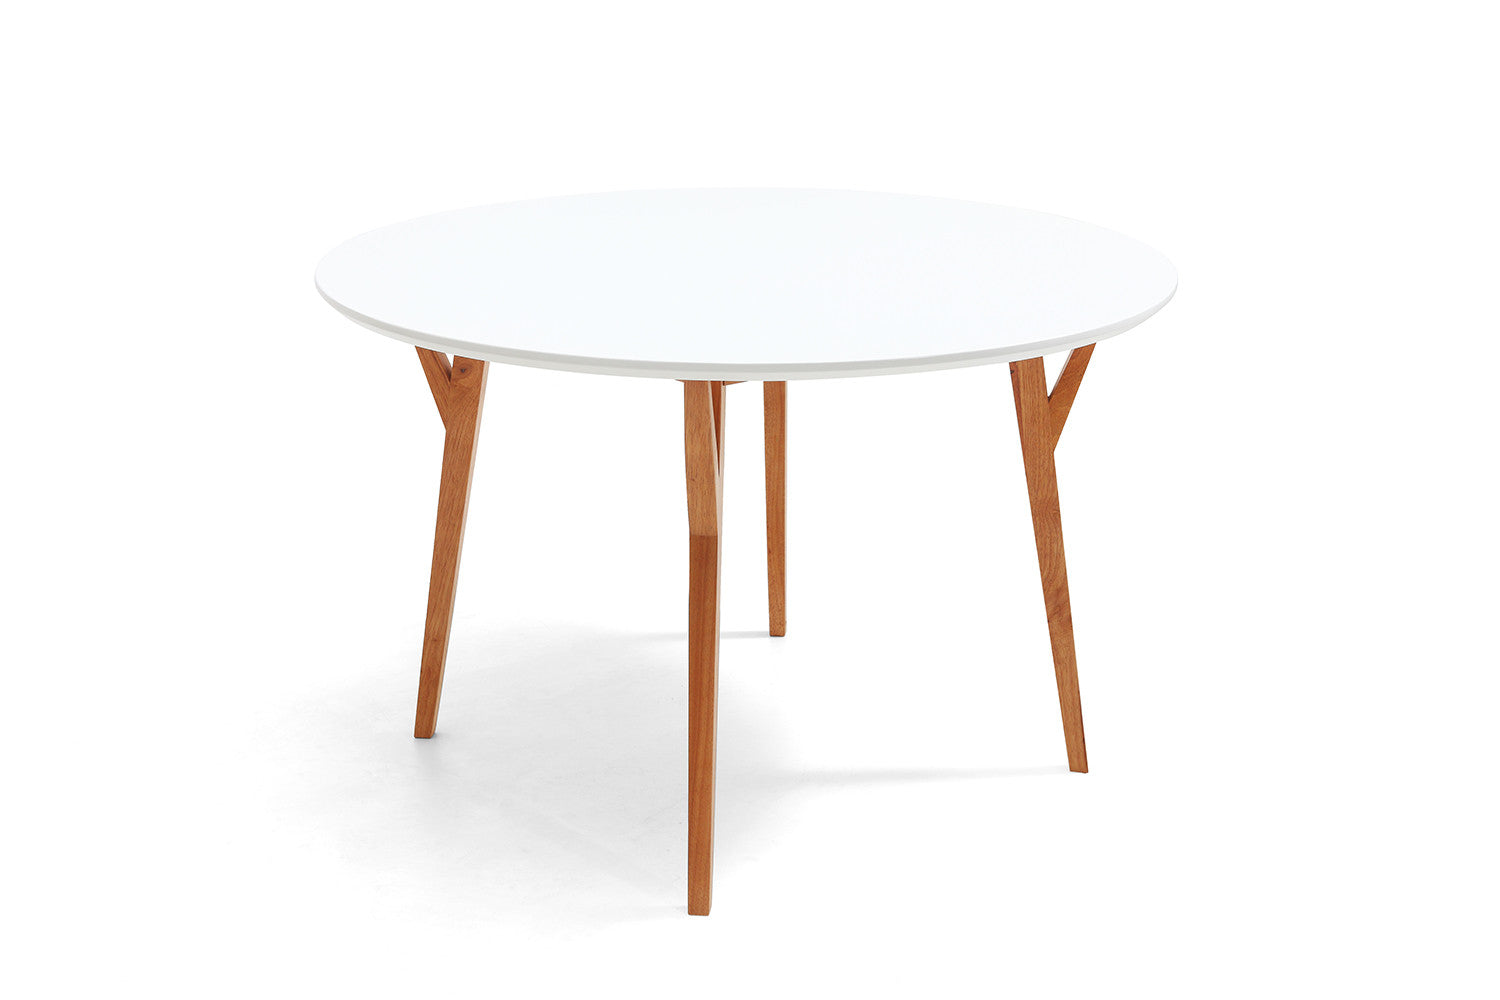 Table de salle manger ronde design scandinave moesa for Table a manger blanche